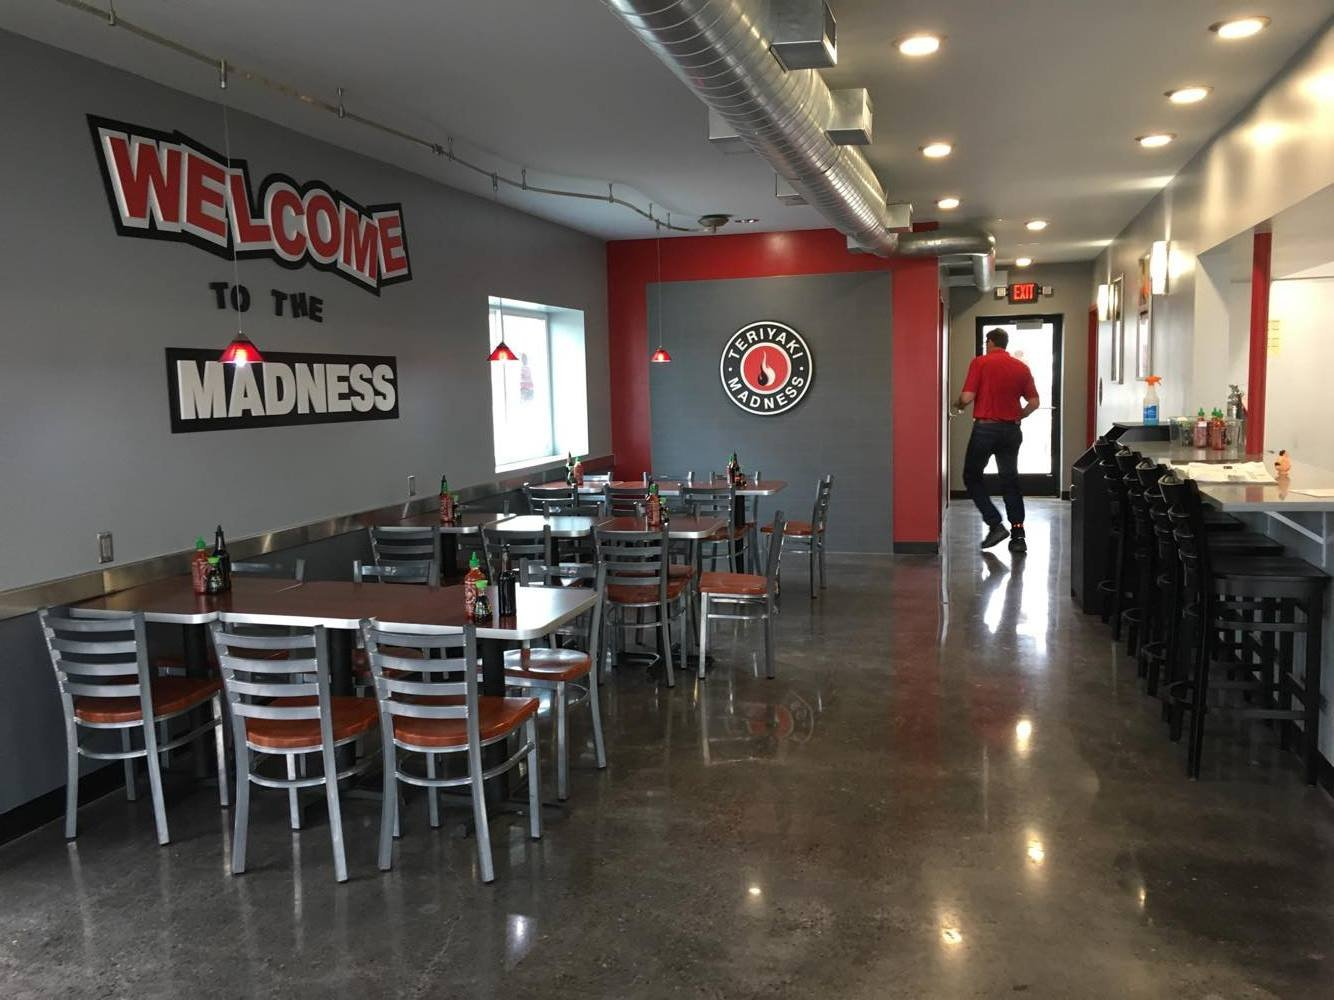 Furniture stores great falls mt - Weissman Says Teriyaki Madness Officially Opens April 3rd With The Grand Opening Taking Place April 4